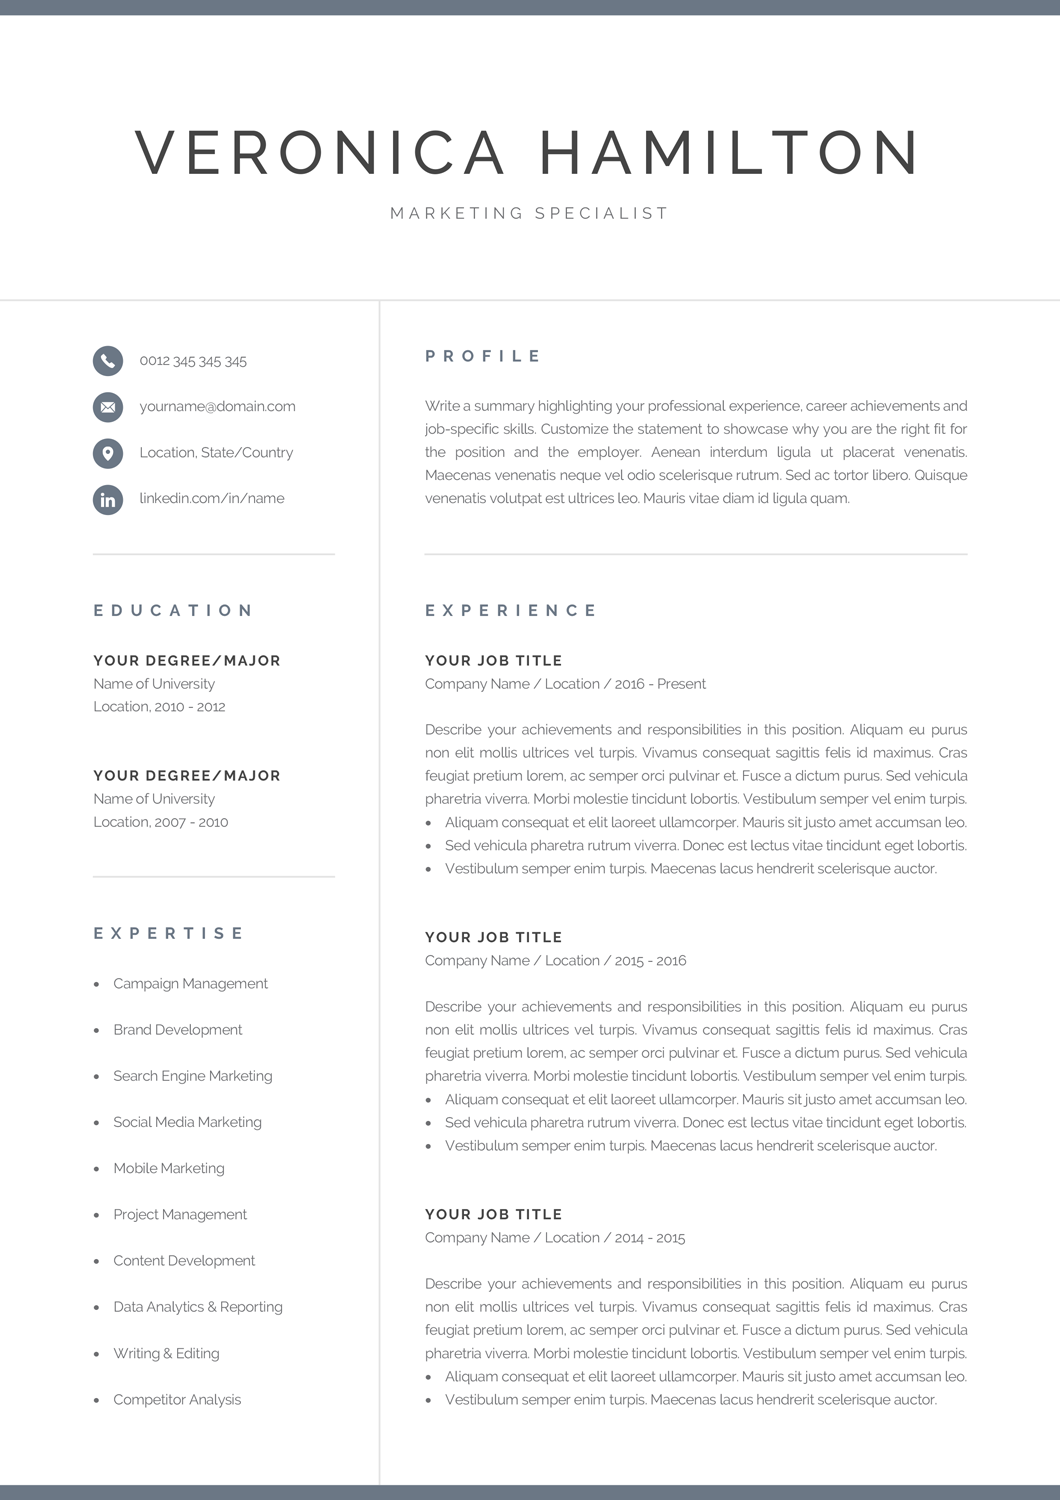 Professional Resume Template | Modern Resume Template For Word | Instant  Download | 1 And 2 Page Resume | Mac U0026 PC | Cover Letter | Veronica